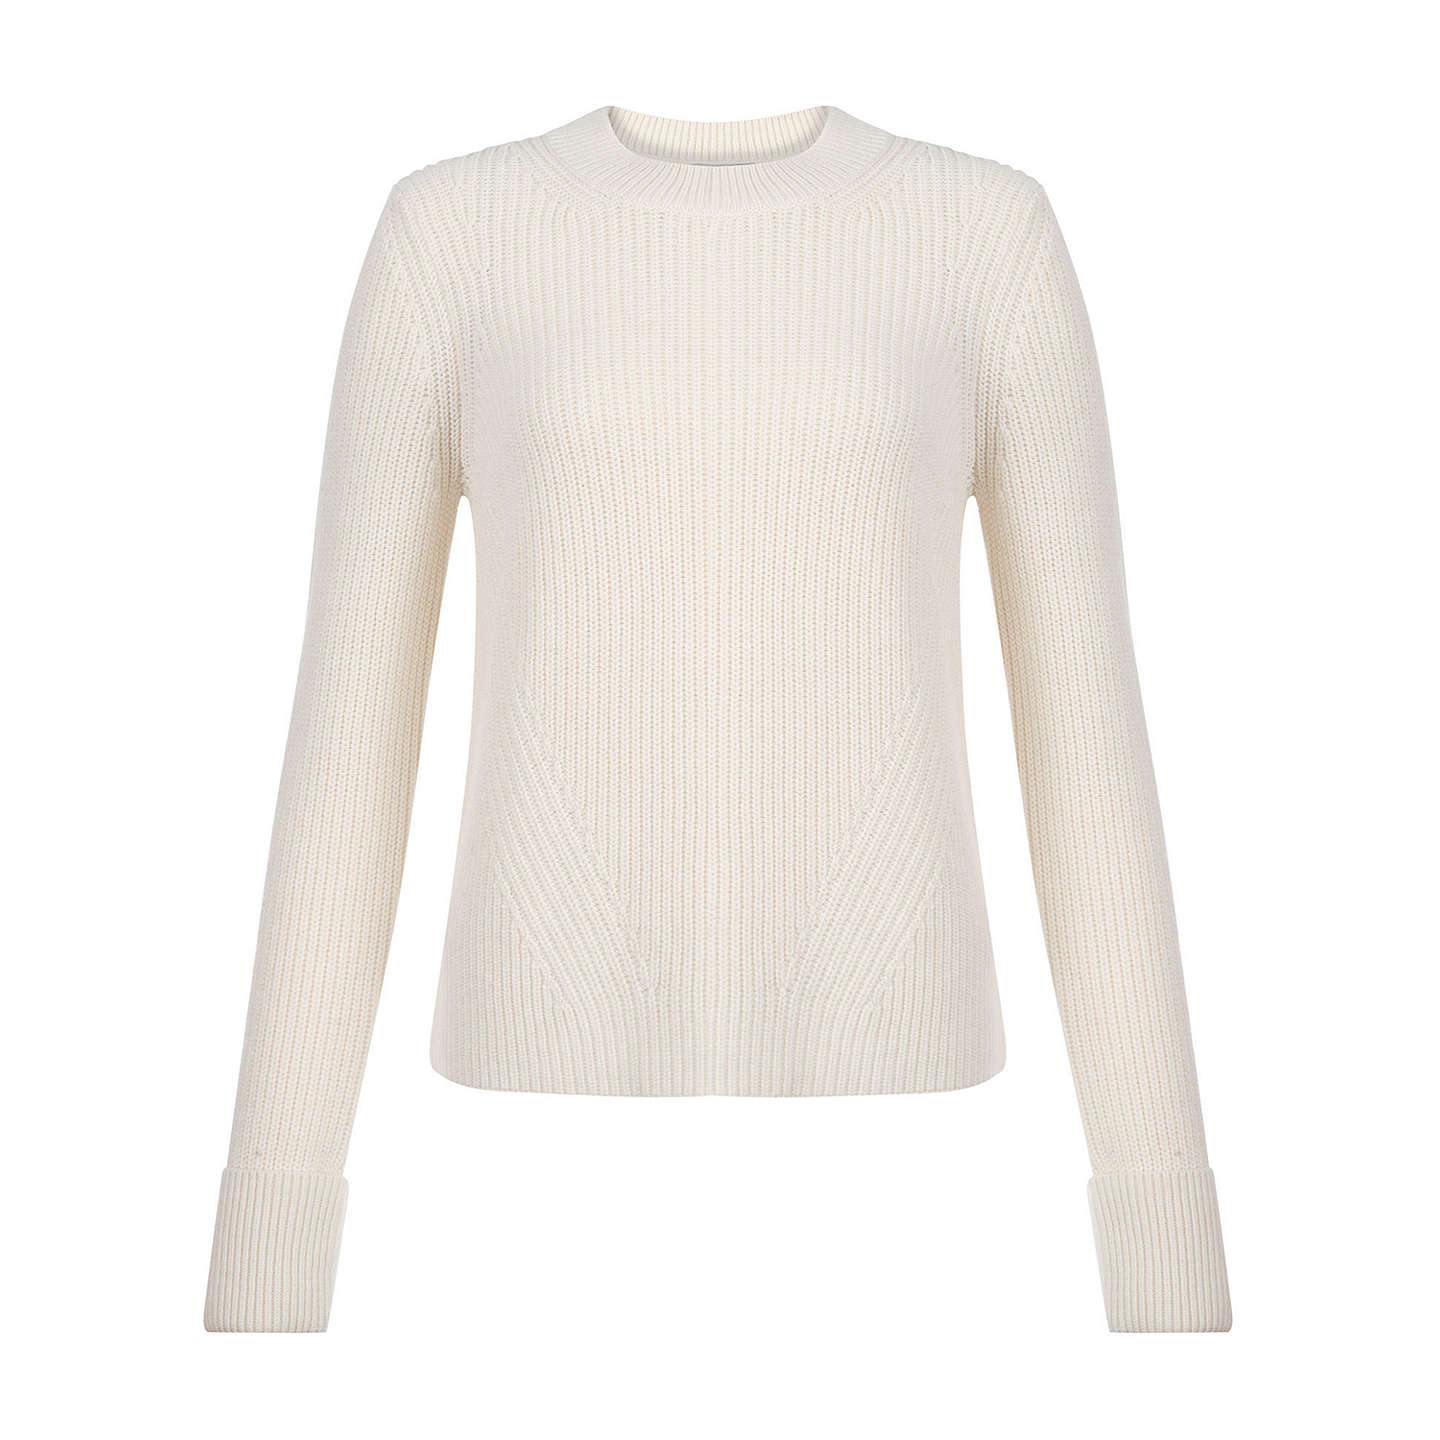 BuyHobbs Charlie Ribbed Jumper, Cream, XS Online at johnlewis.com